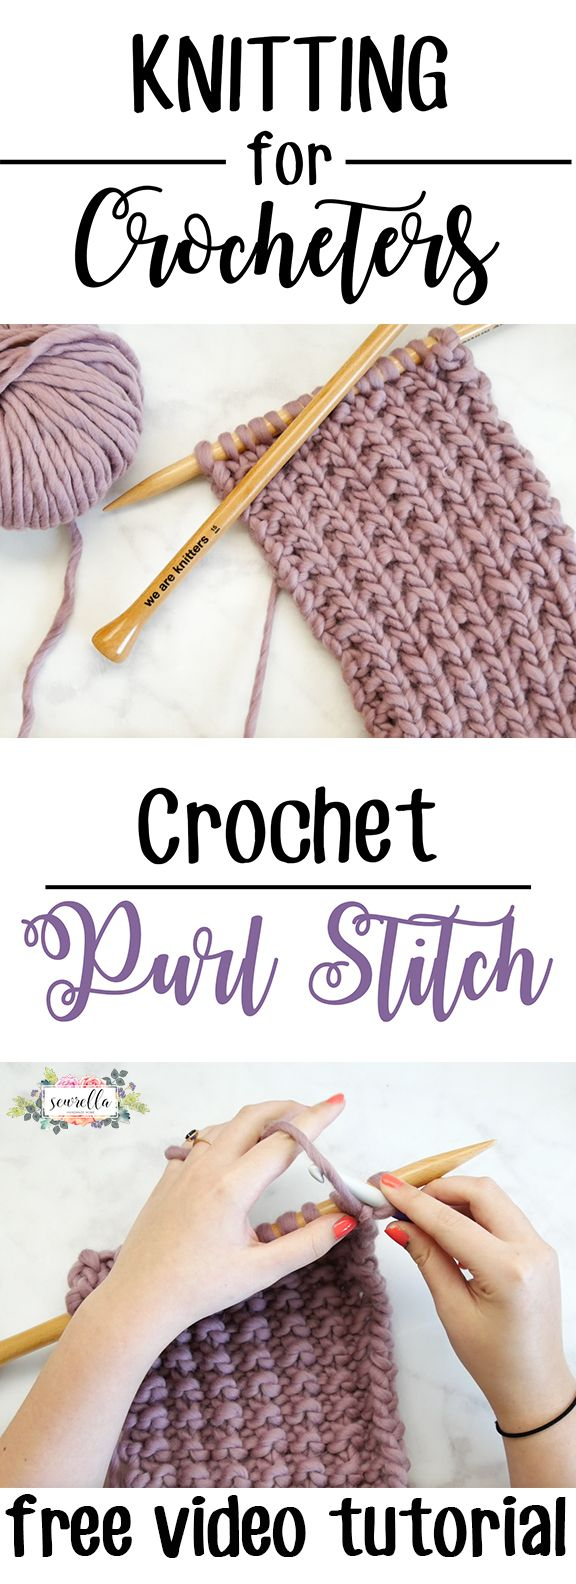 Knitting for crocheters - learn to knit the purl stitch with your crochet hook!   Free video tutorial from Sewrella